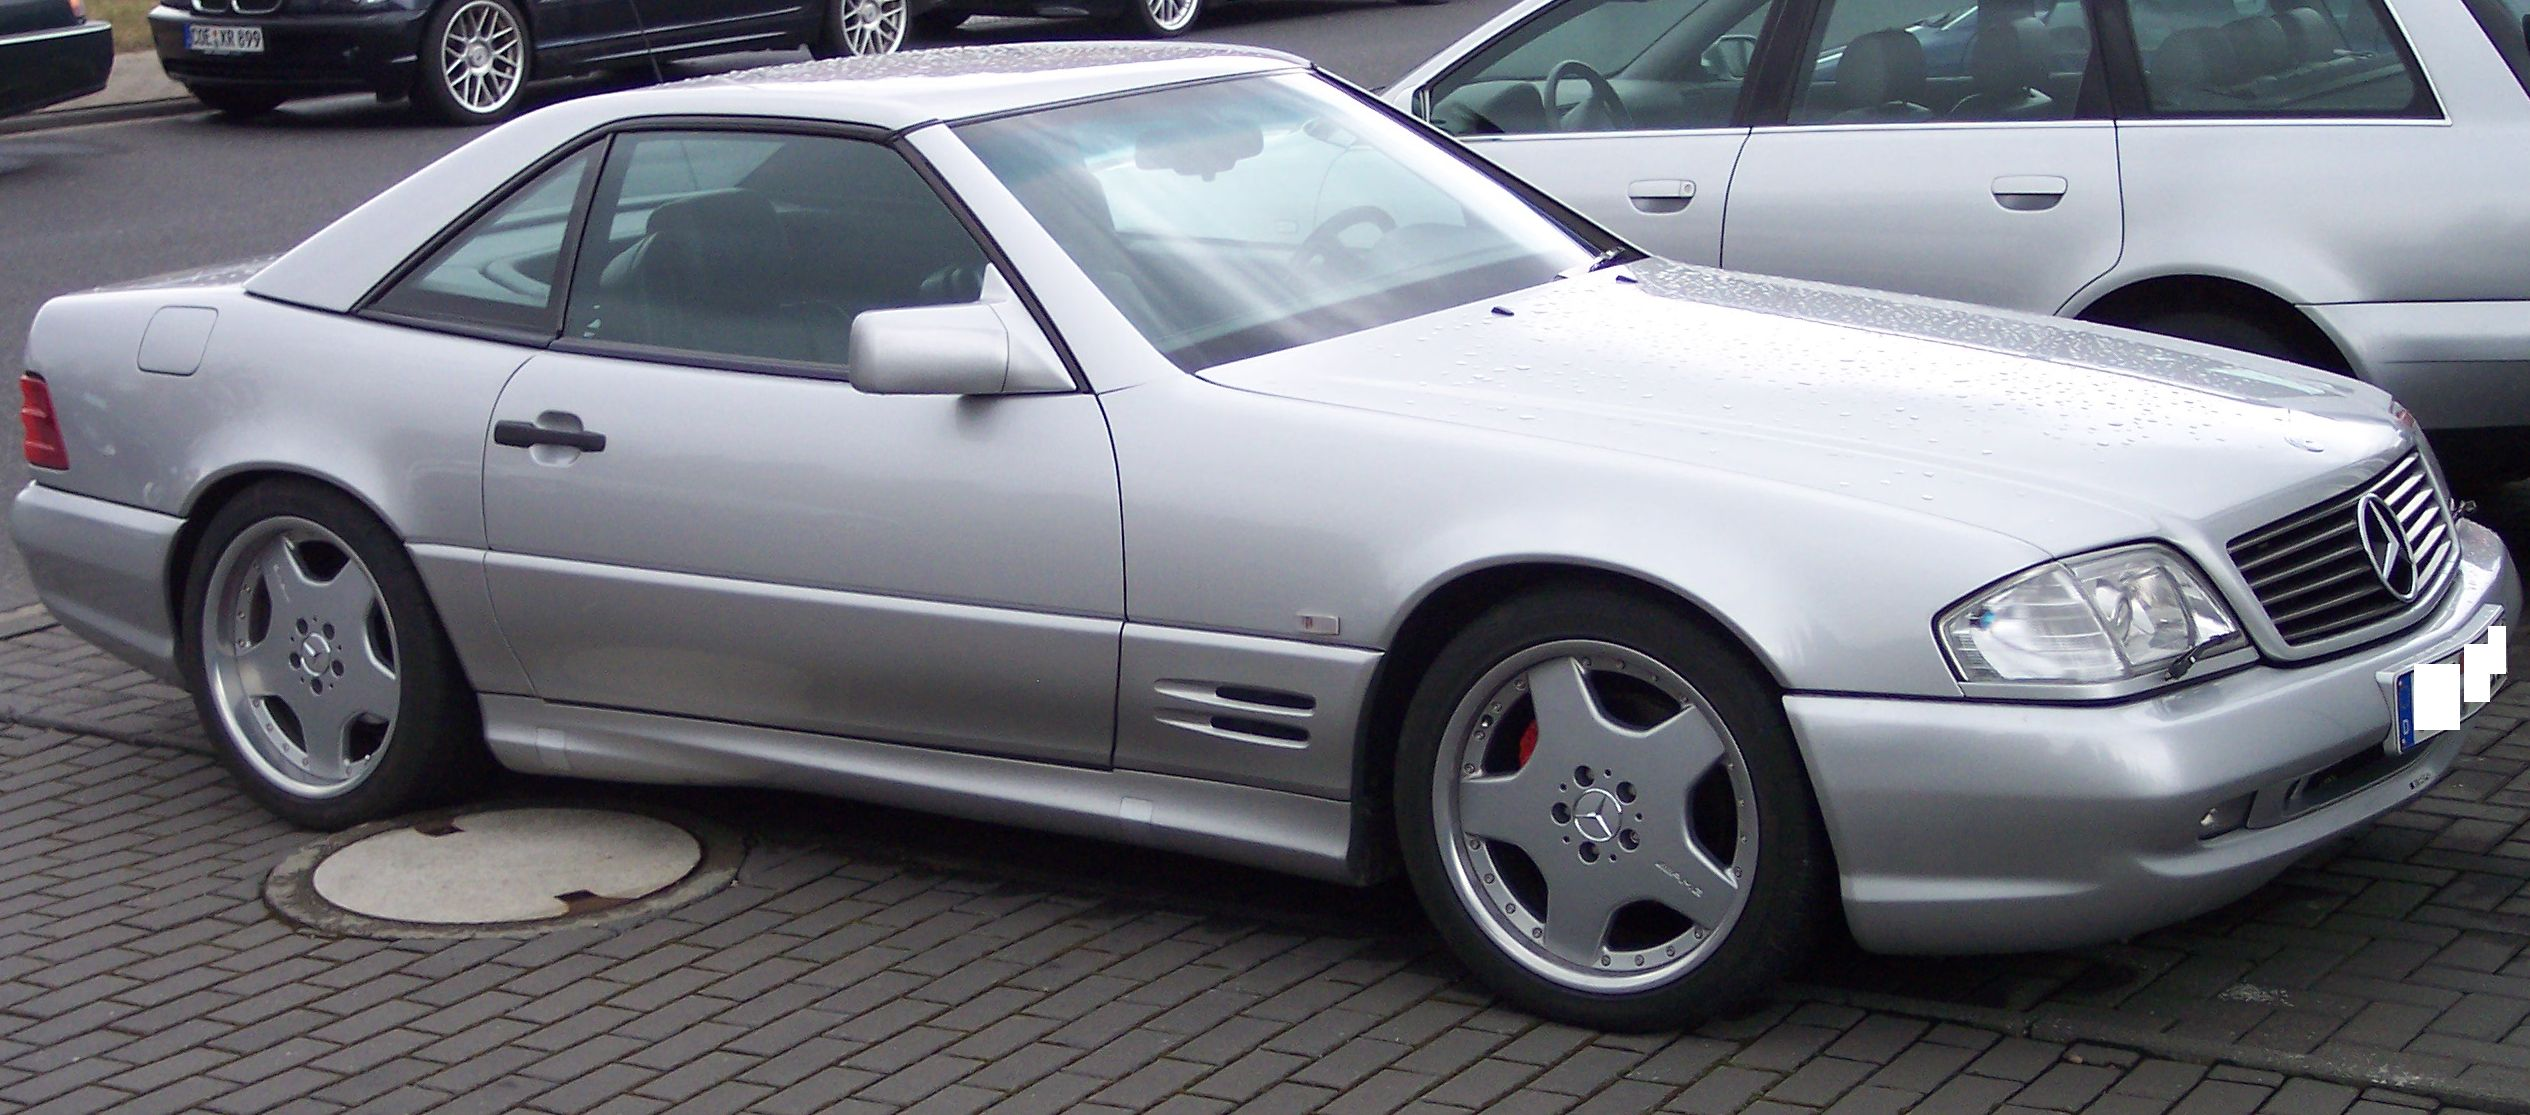 Mercedes benz r129 sl vr for Mercedes benz silver